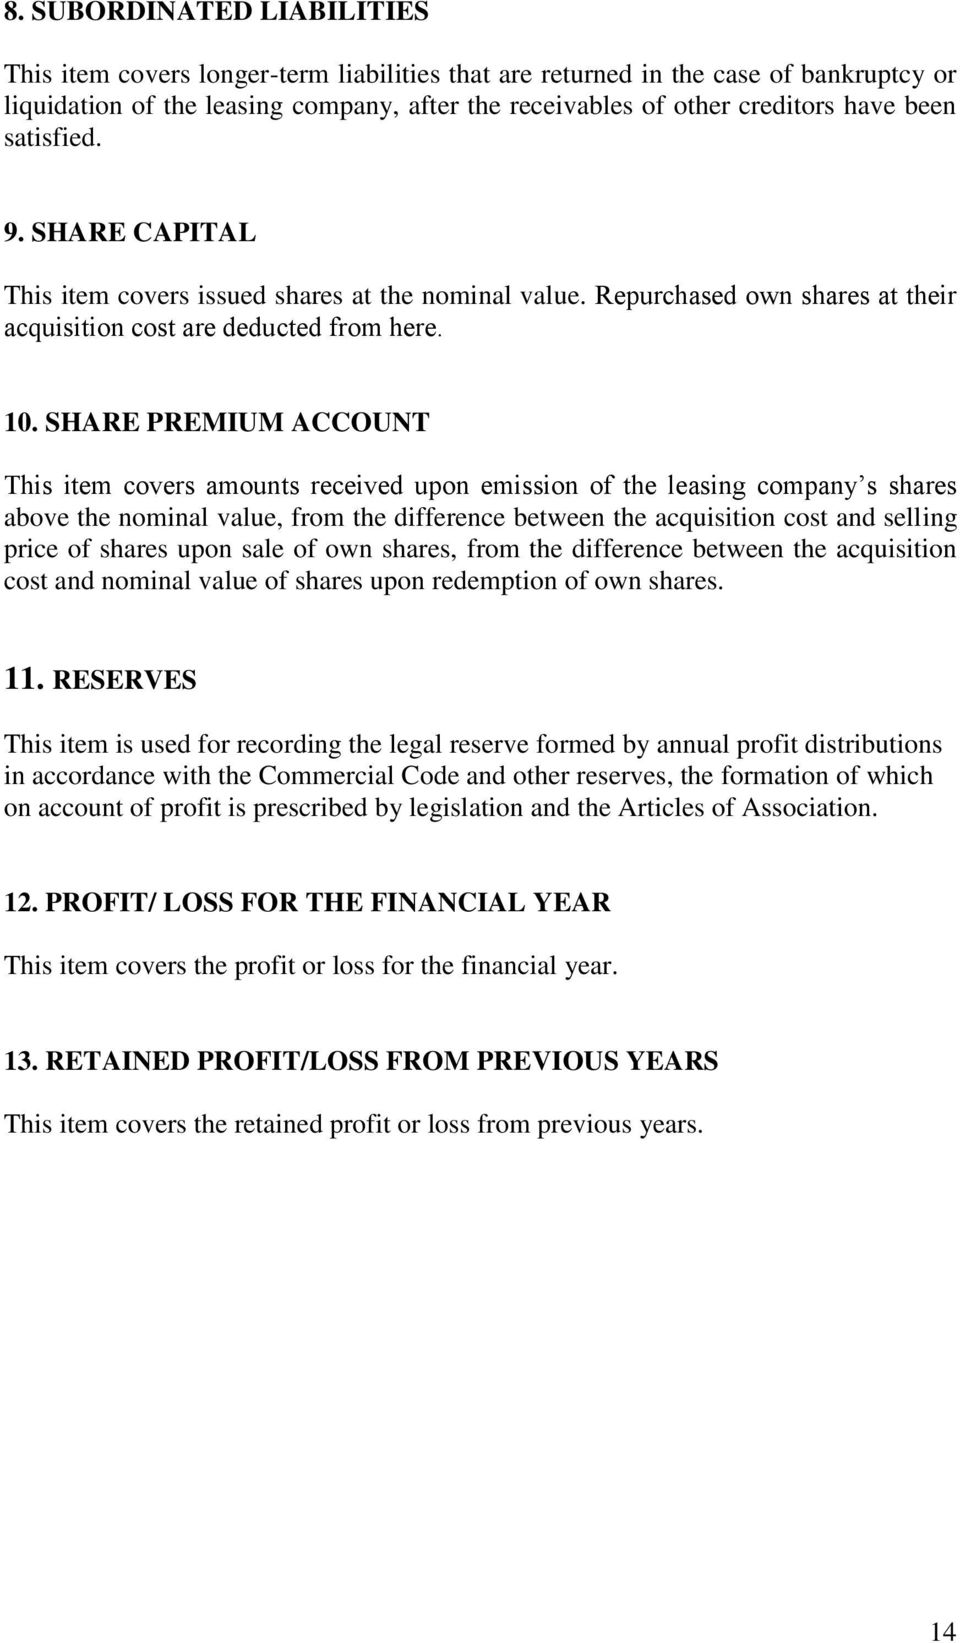 SHARE PREMIUM ACCOUNT This item covers amounts received upon emission of the leasing company s shares above the nominal value, from the difference between the acquisition cost and selling price of